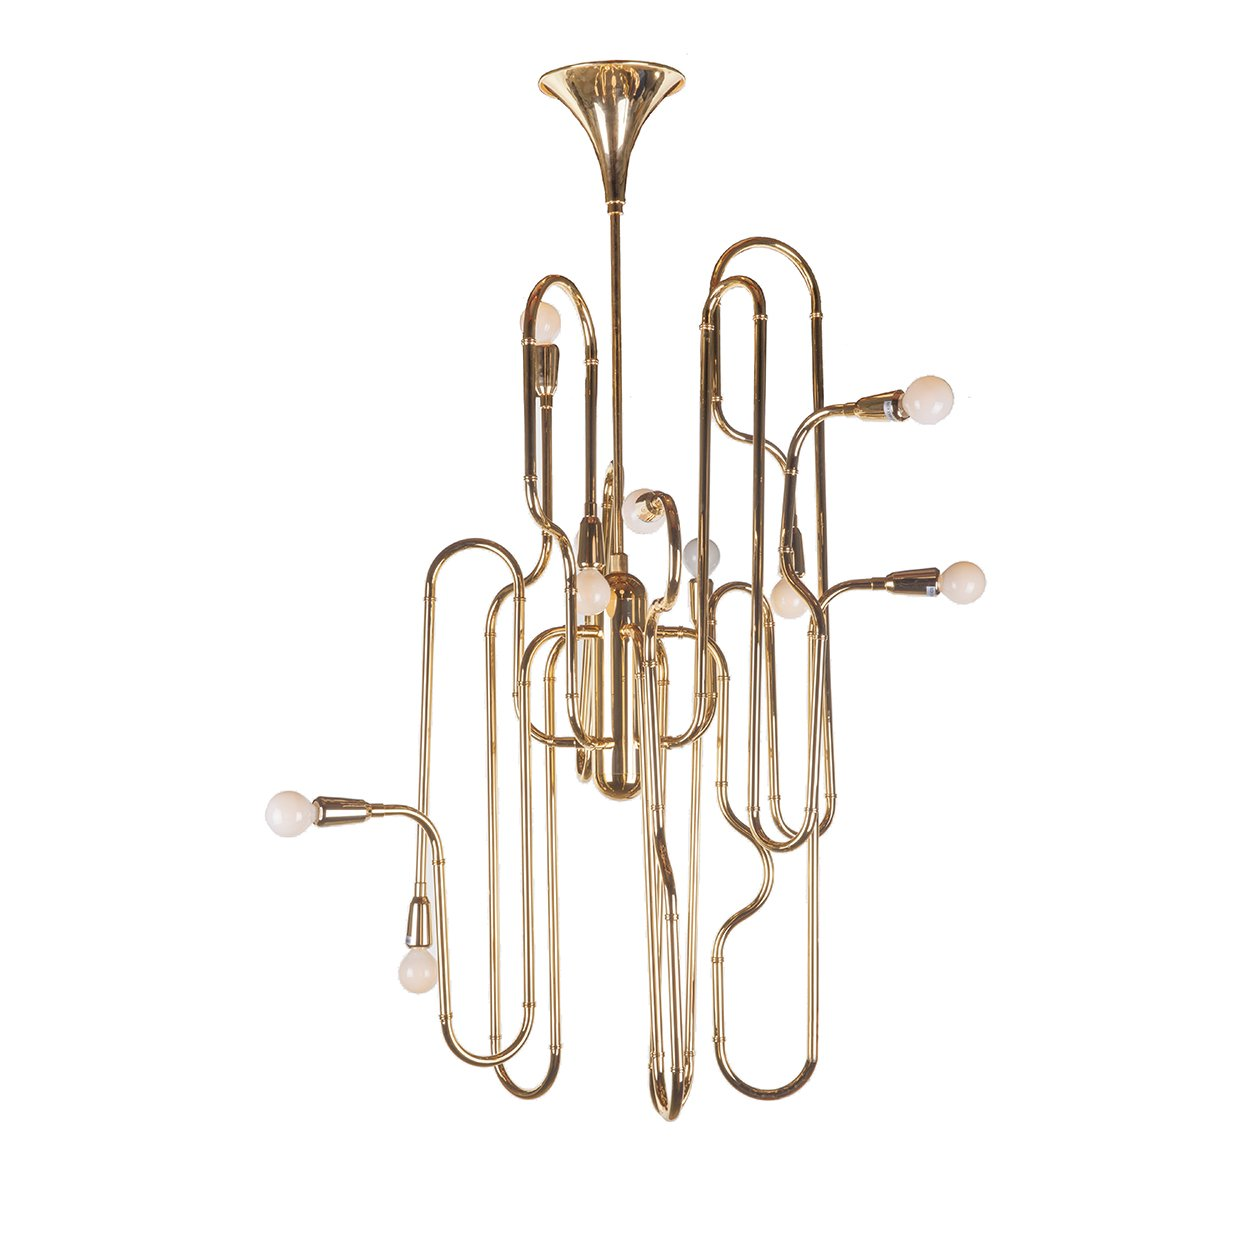 [LM35810PGOLD] The Trombone Chandelier SALE